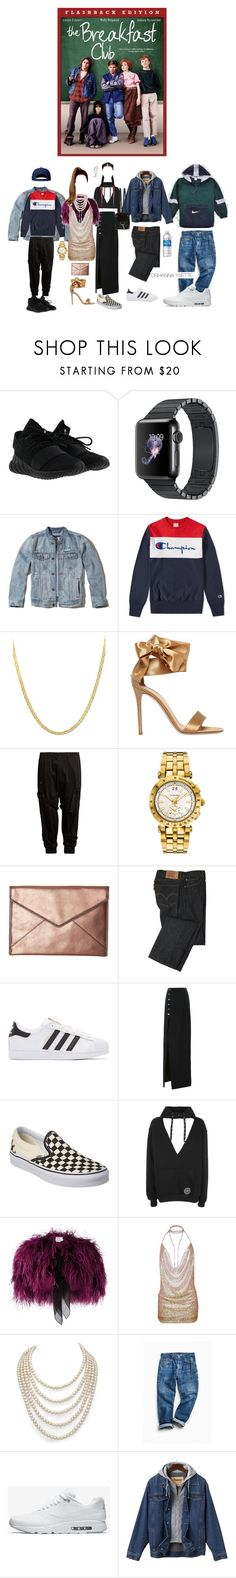 """""""The Breakfast Club"""" by oshannayvette ❤ liked on Polyvore featuring adidas, Hollister Co., Champion, Lord & Taylor, Gianvito Rossi, Yohji Yamamoto, Versace, Rebecca Minkoff, Levi's and adidas Originals"""